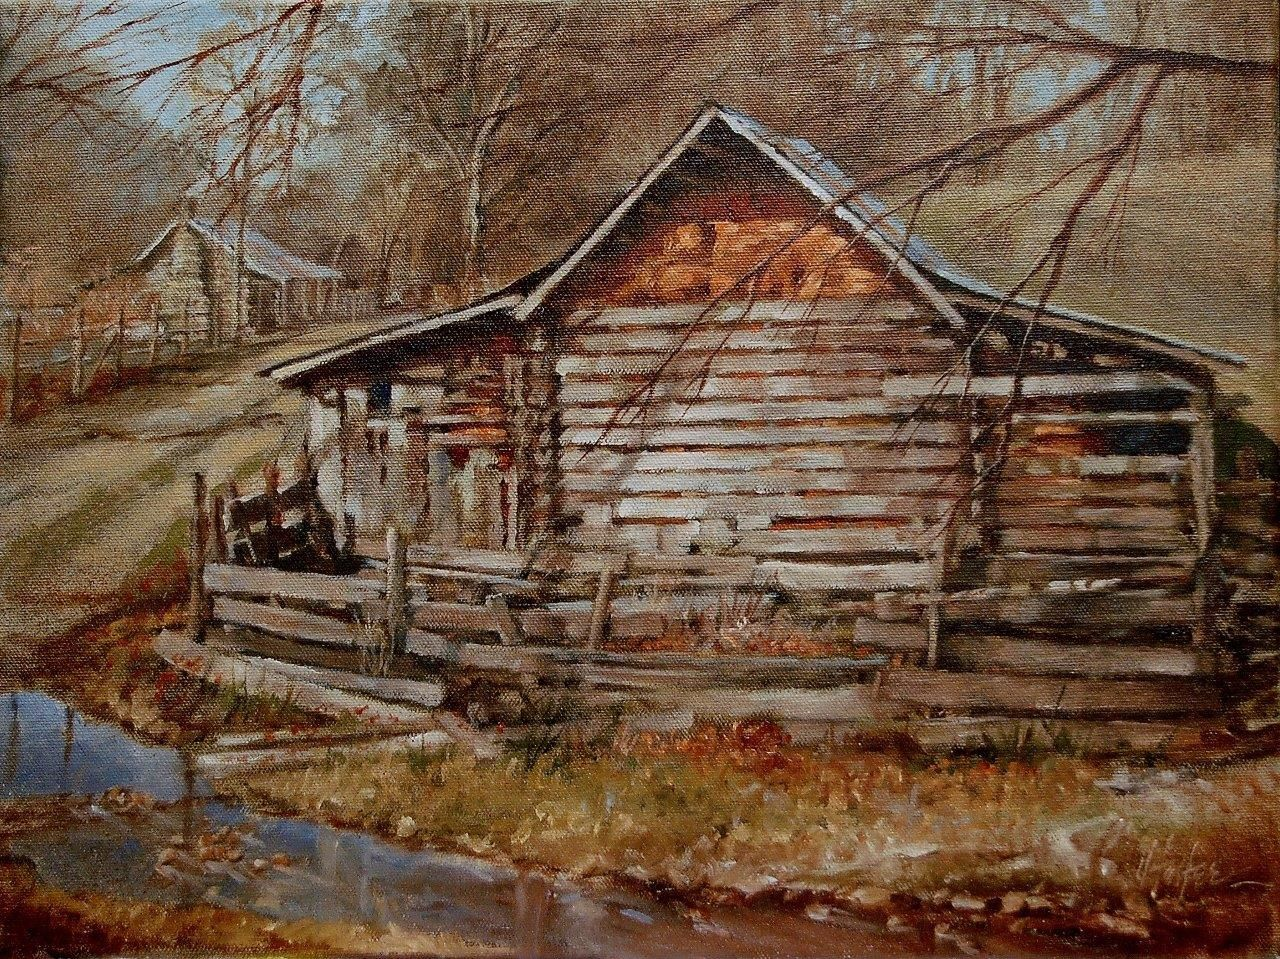 """Hay Barn"" by J. Hester Original Oil Painting 12"" x 16"""